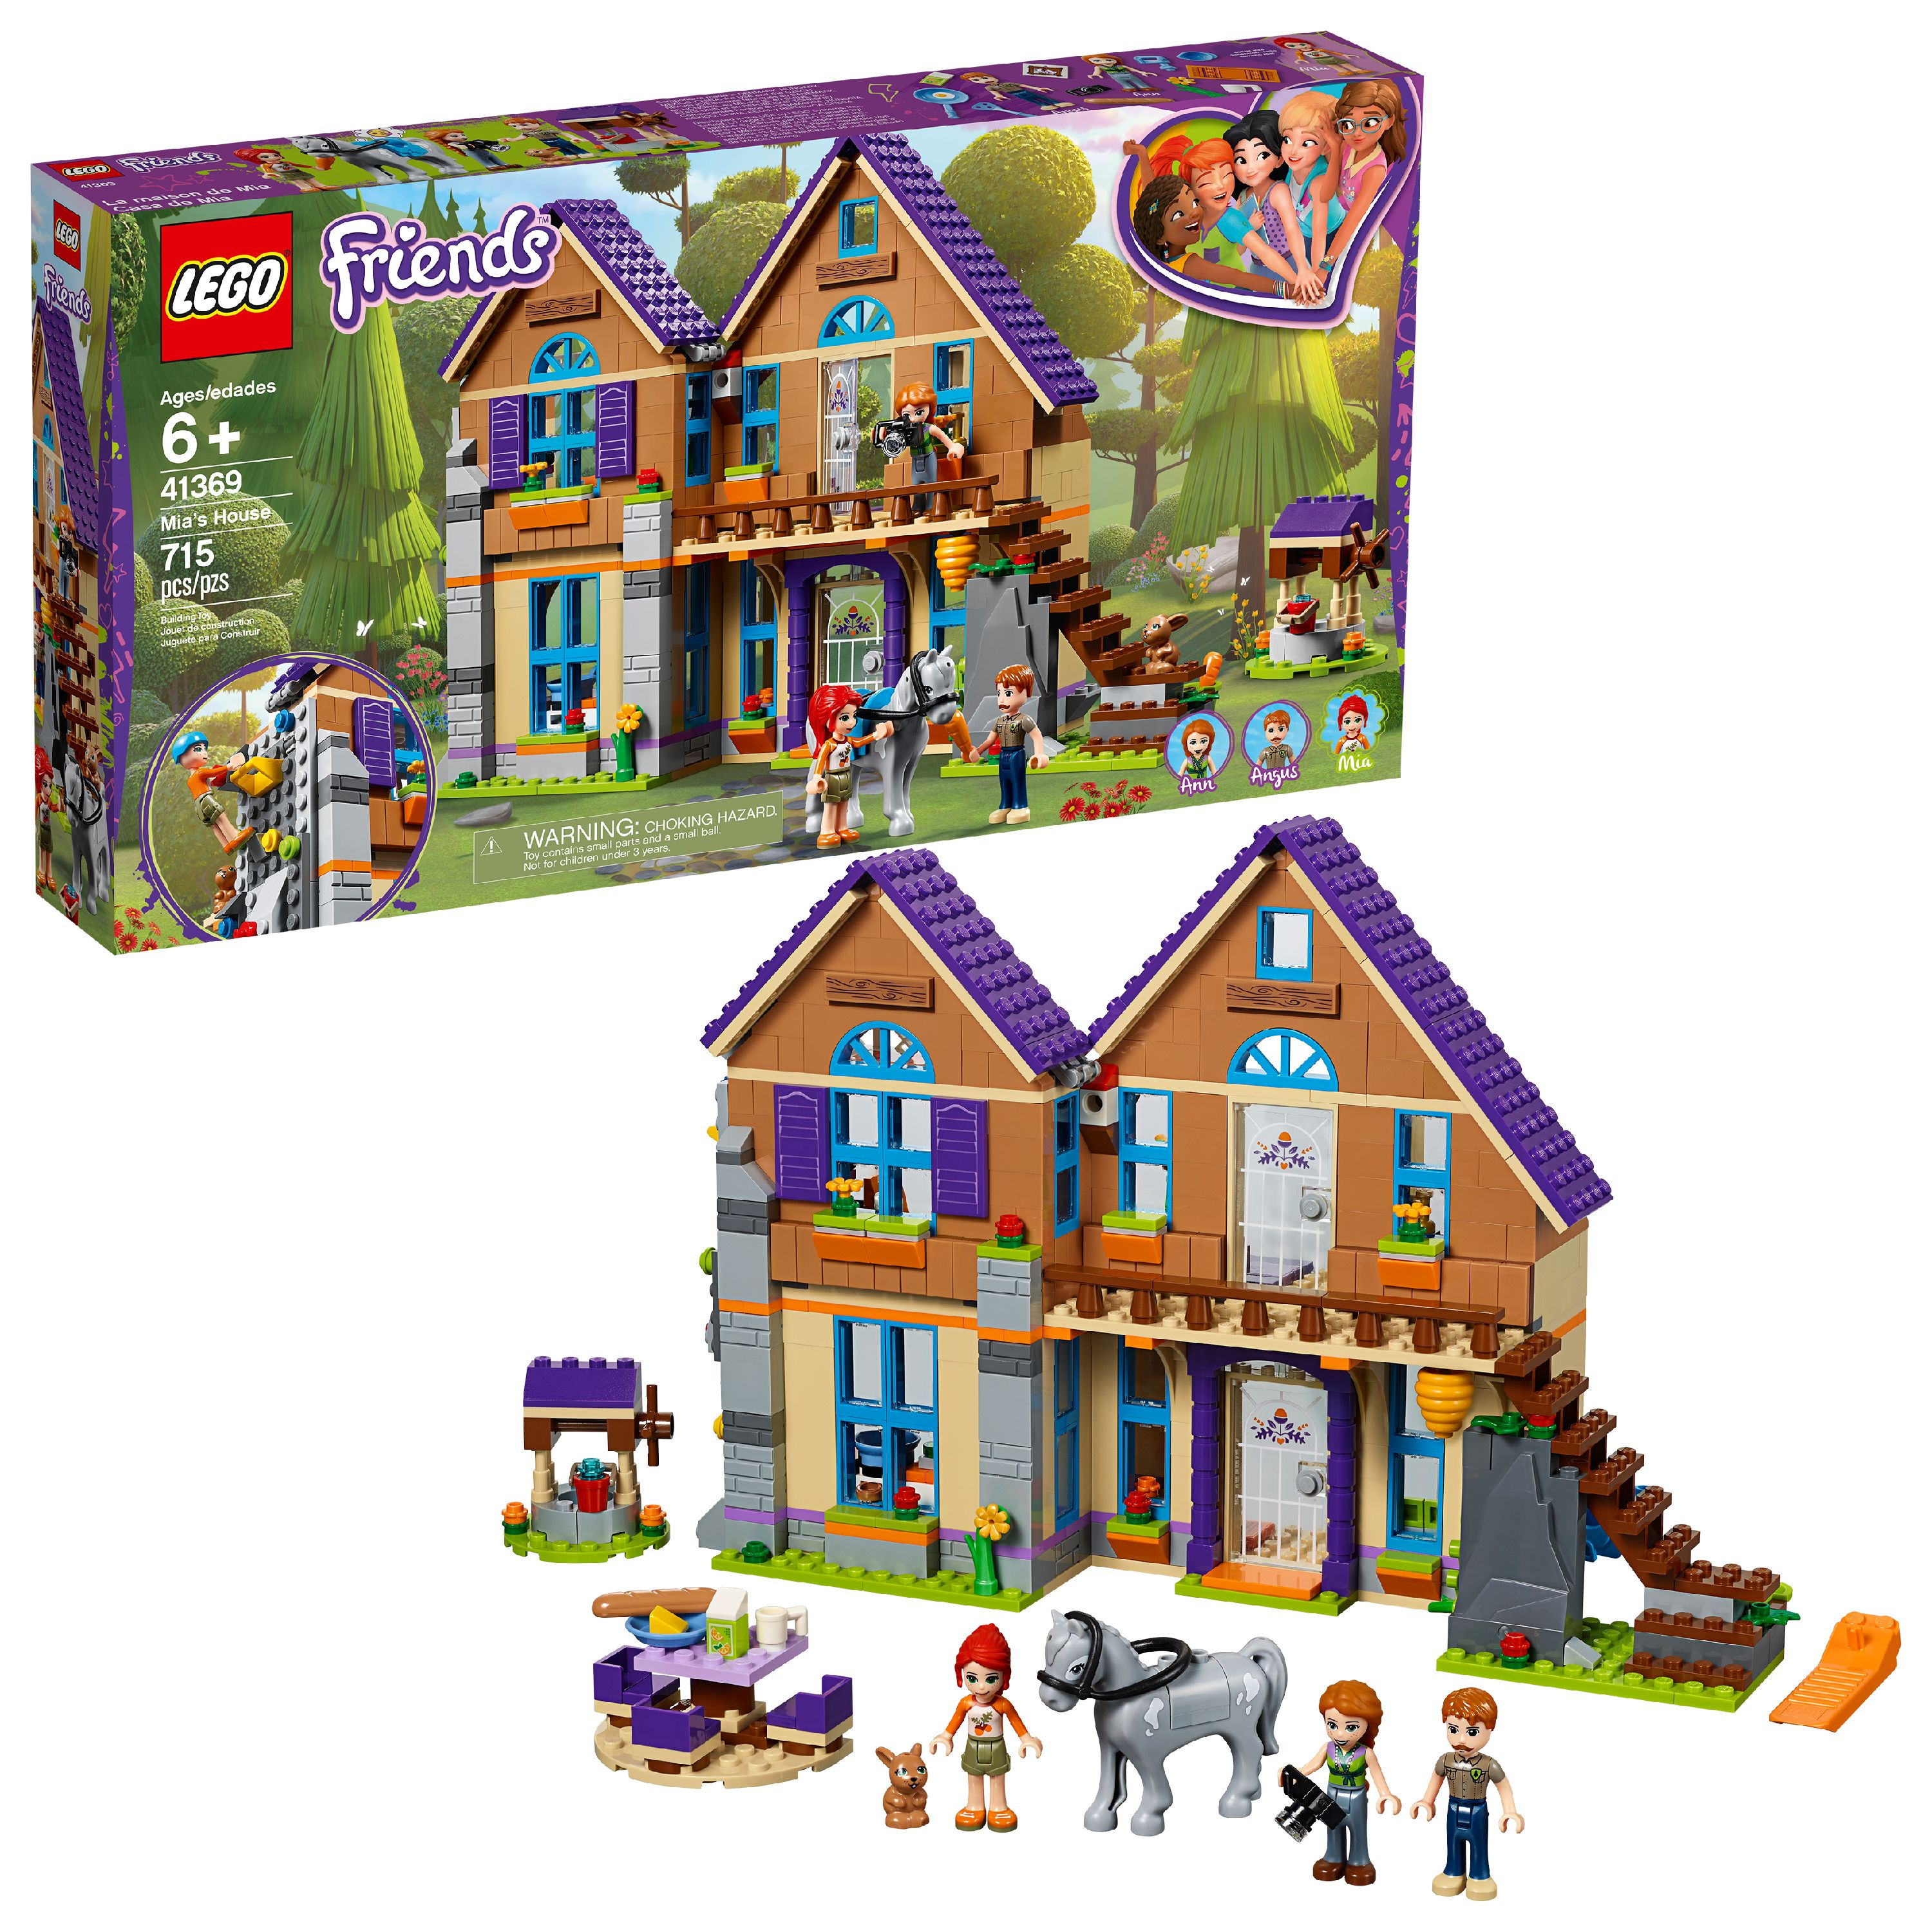 LEGO Friends Mia's House 41369 Building Set (715 Pieces)